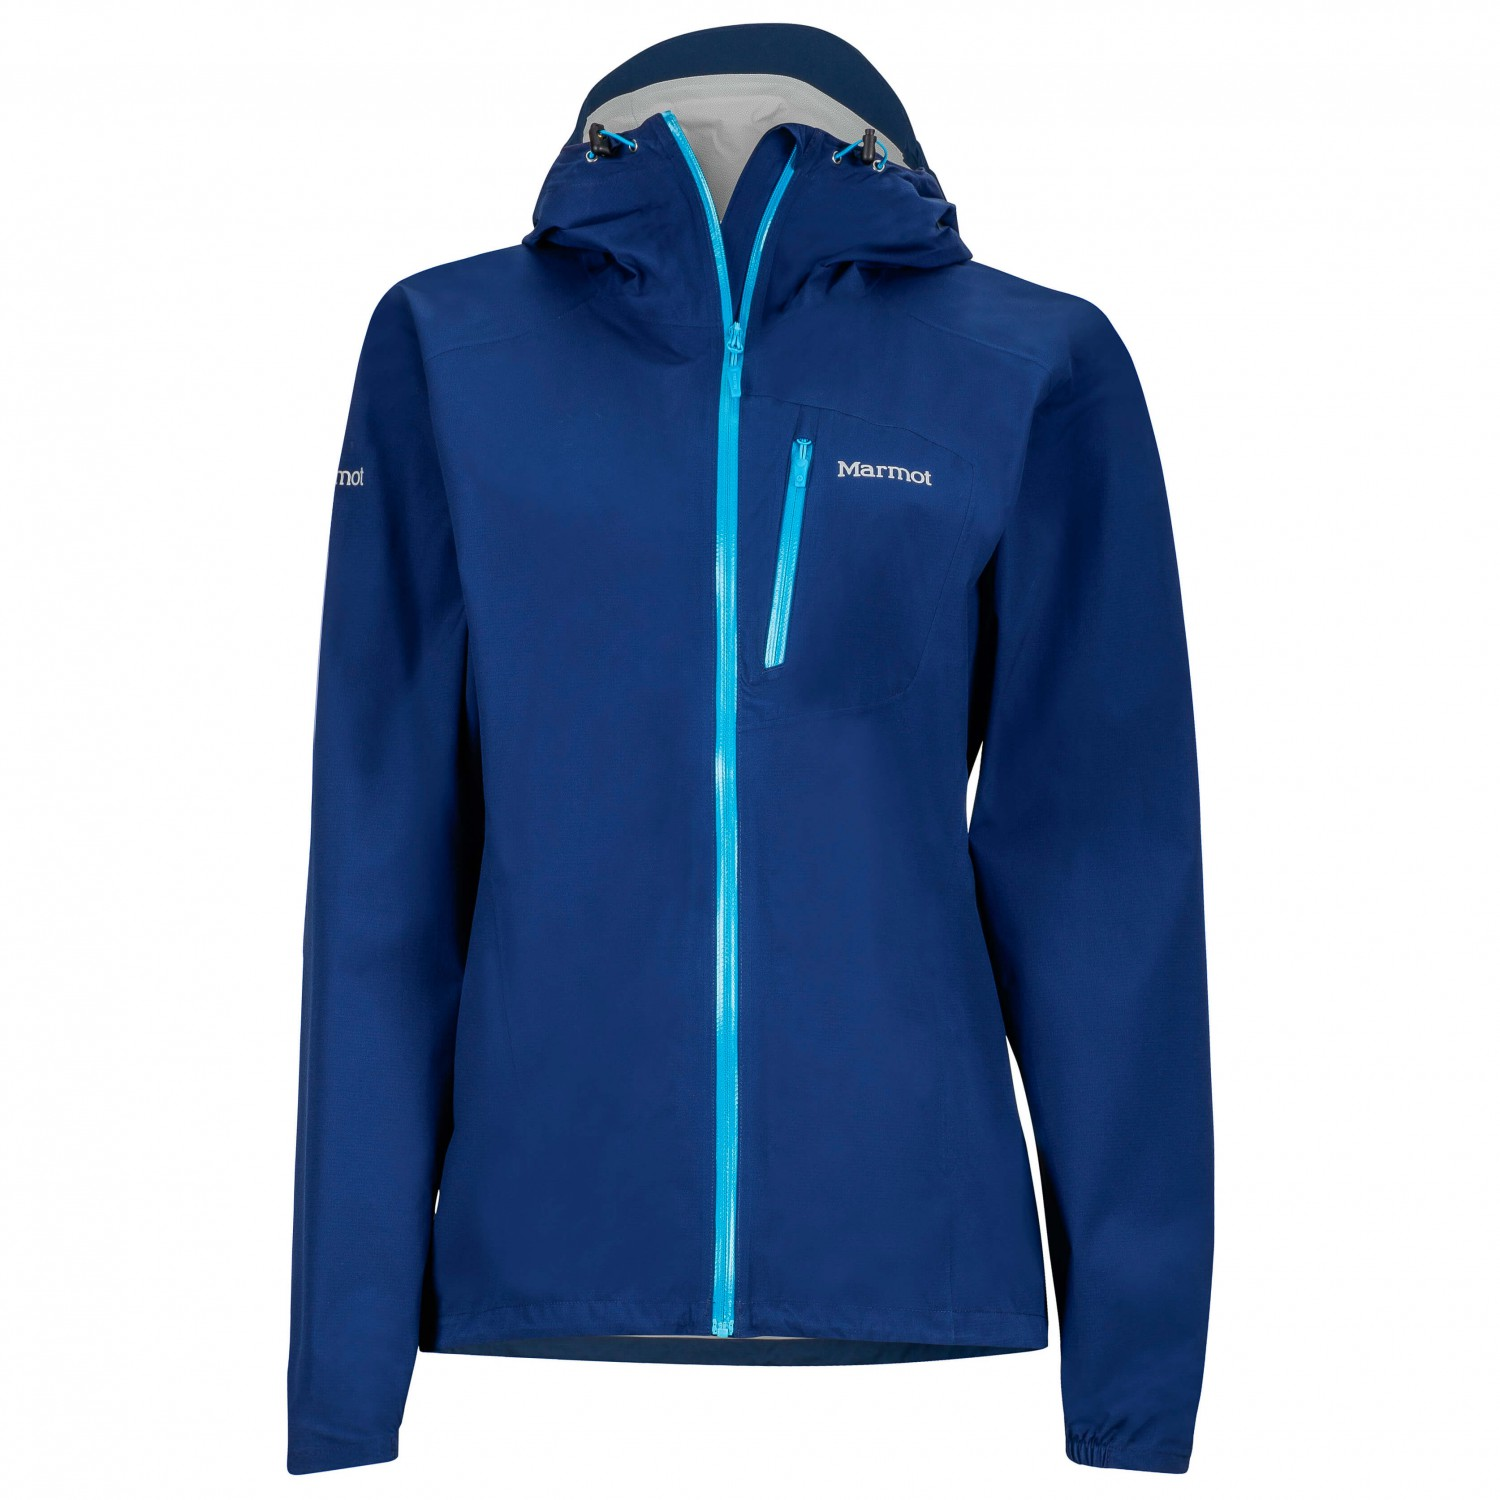 Marmot Essence Jacket Waterproof Jacket Women S Buy